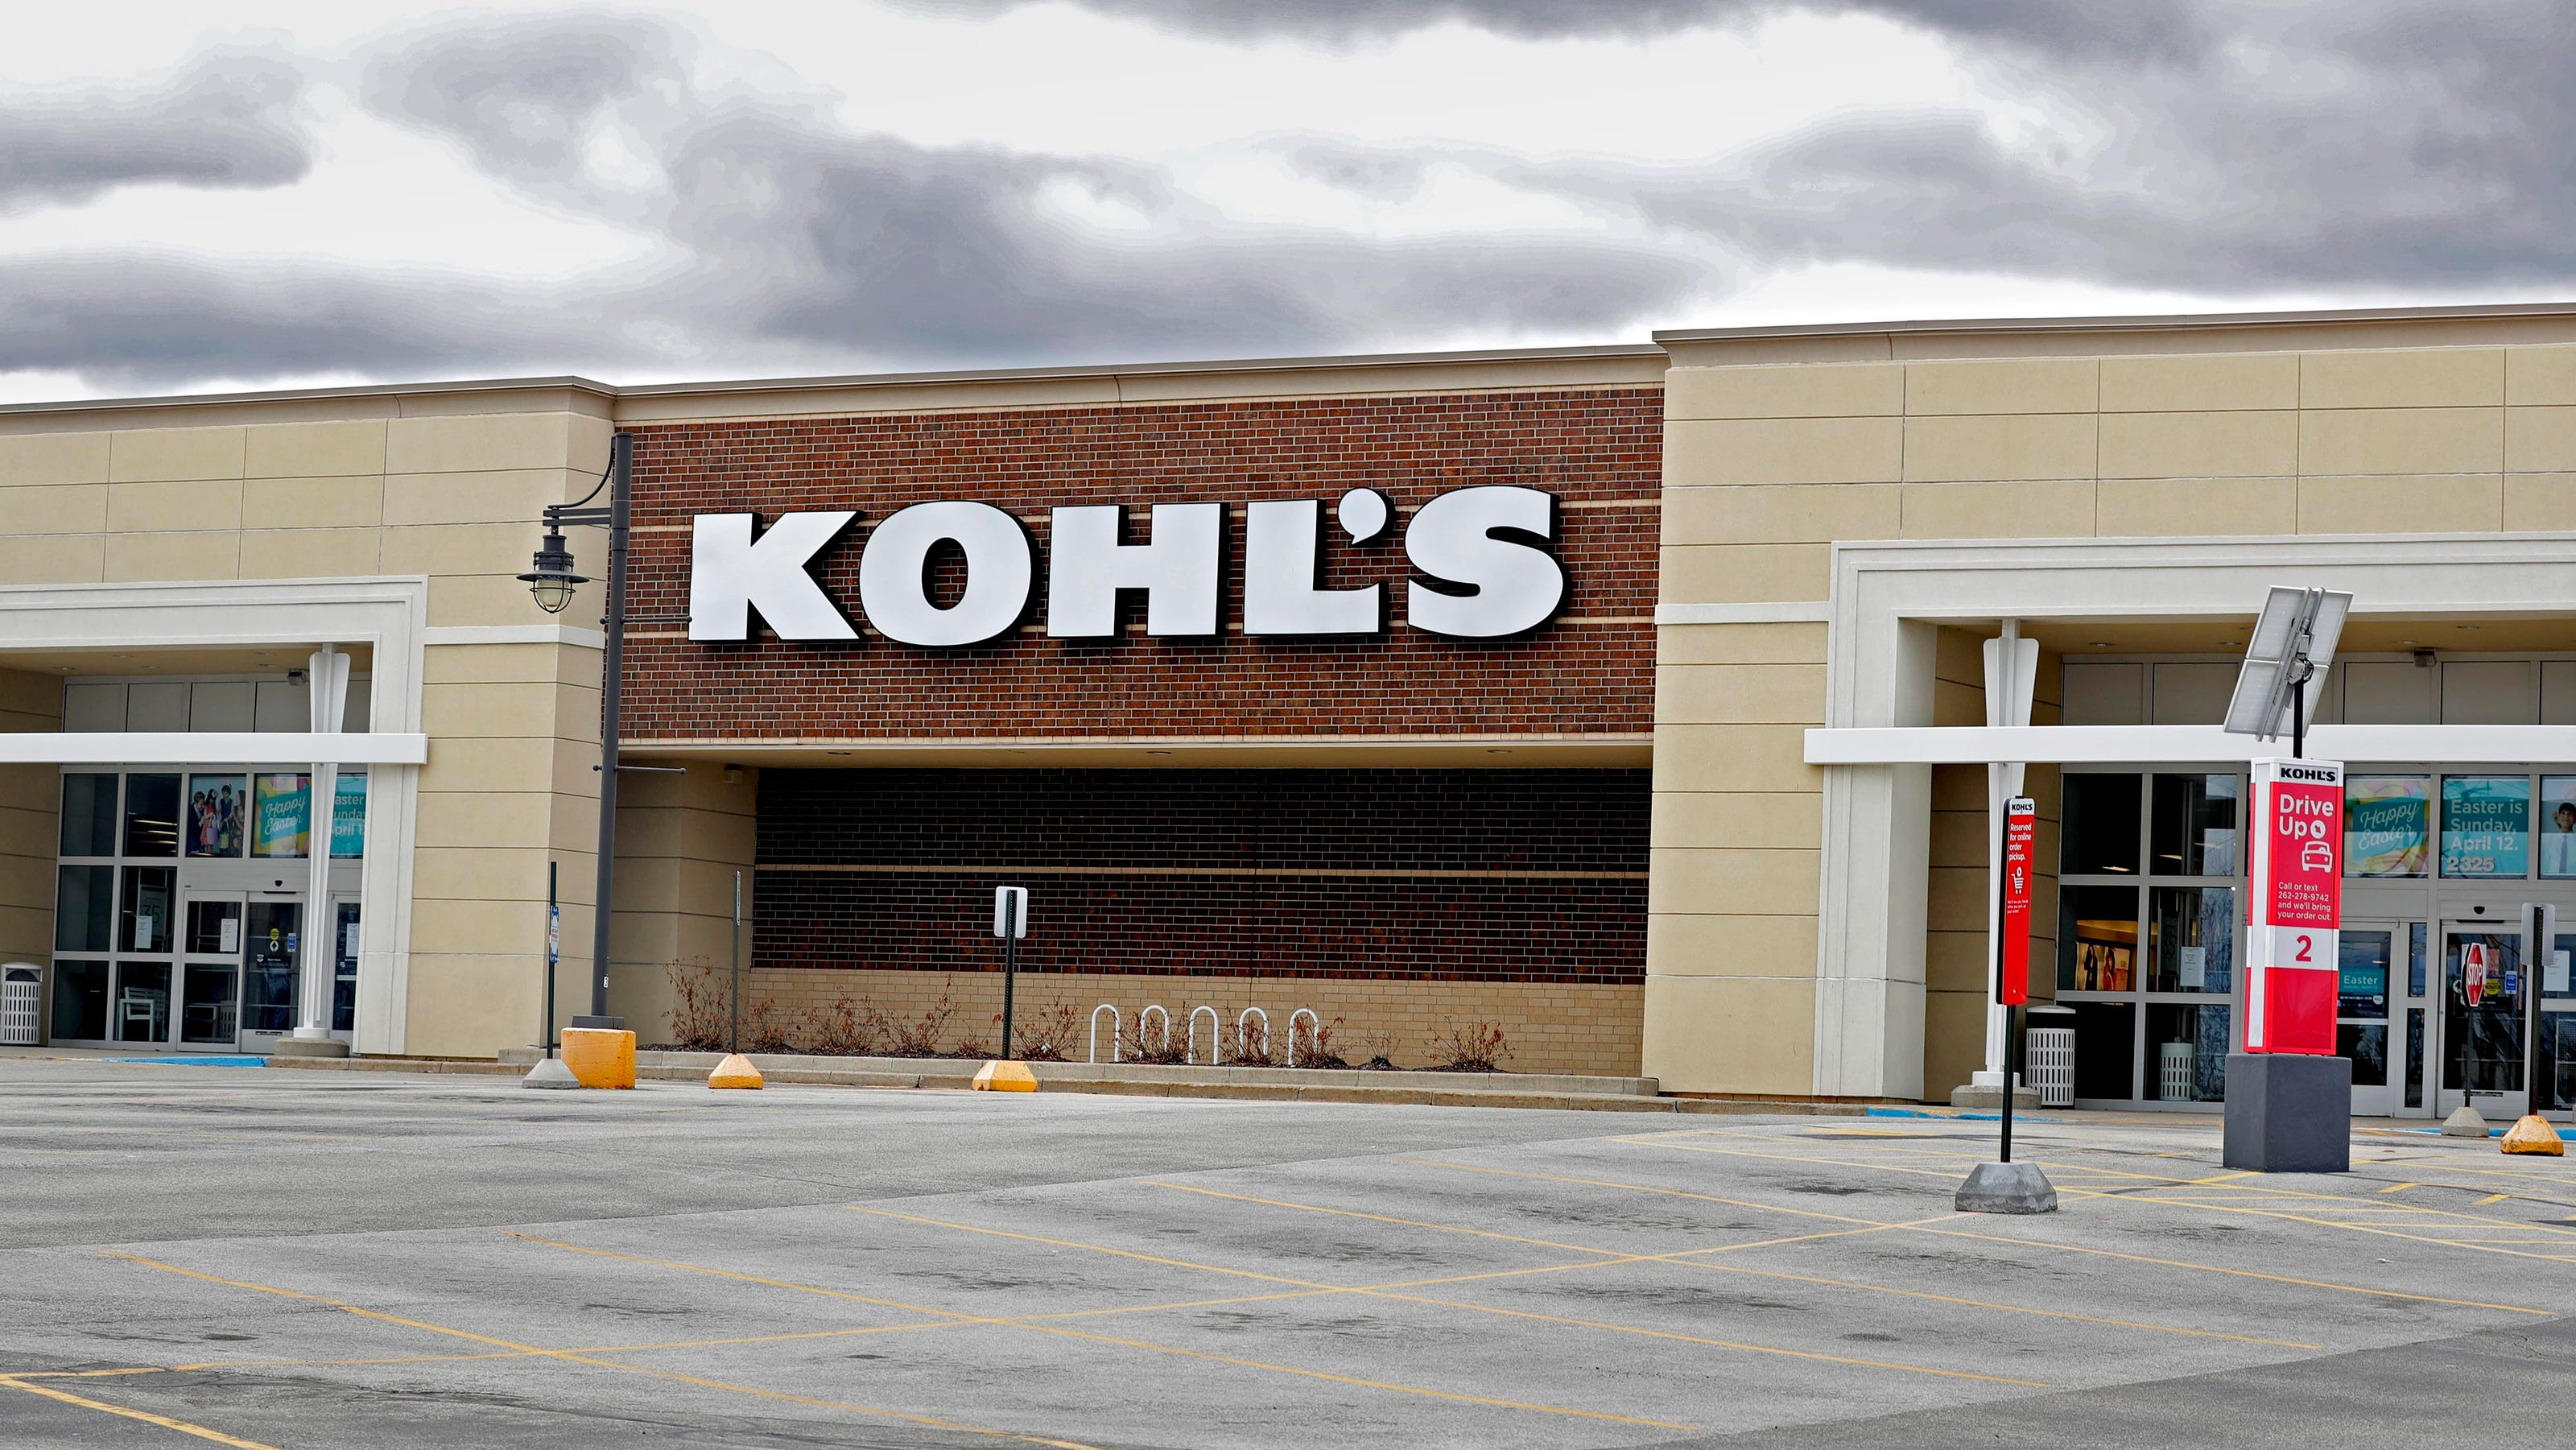 How to Apply for a Kohl's Credit Card